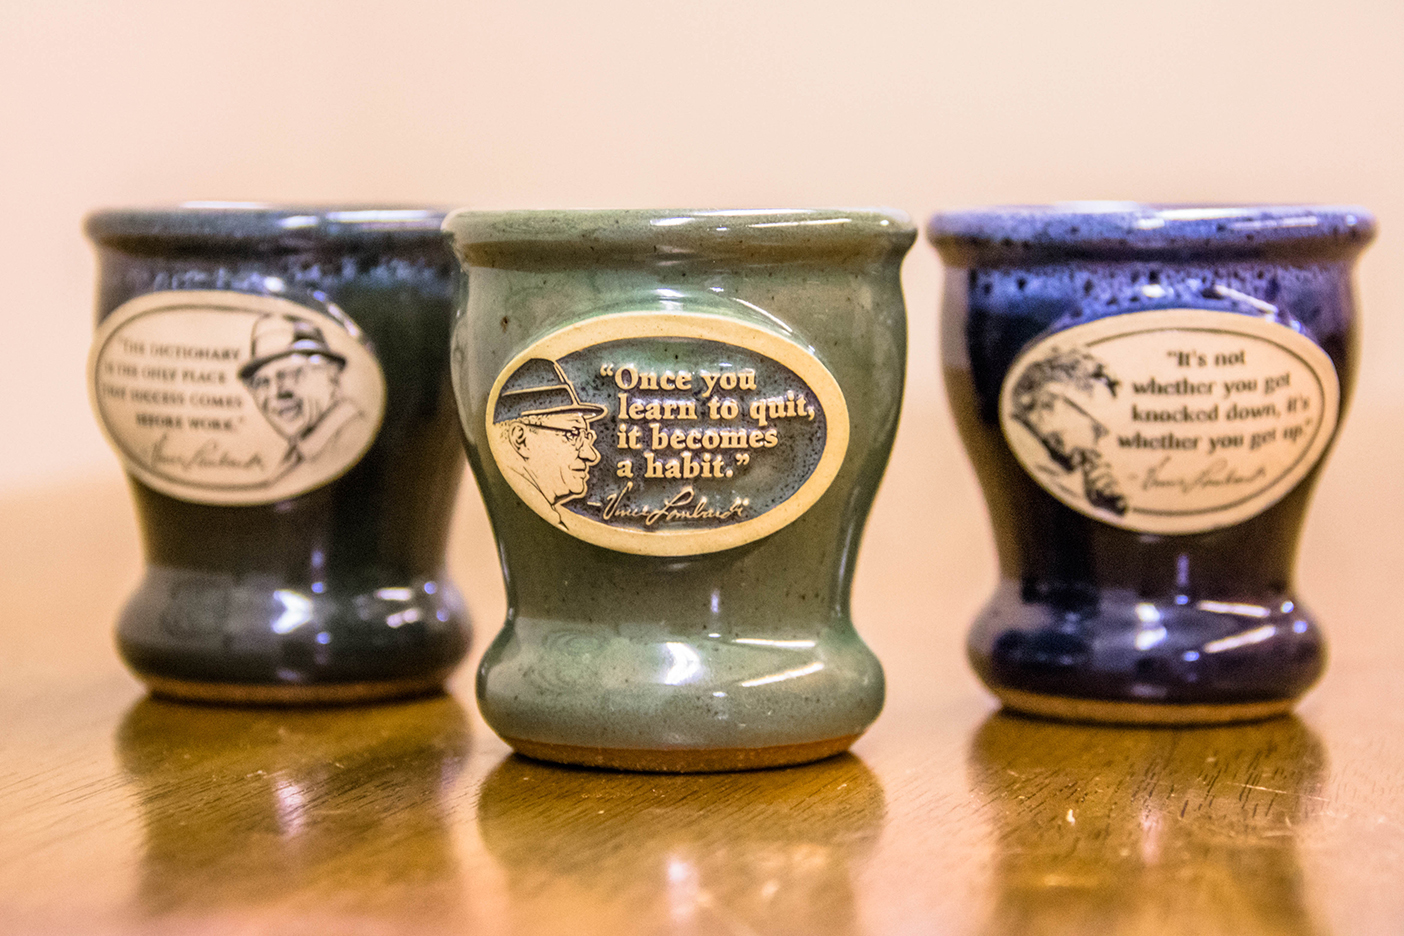 The Little Shooter, a Unique Shot Glass from Sunset Hill Stoneware